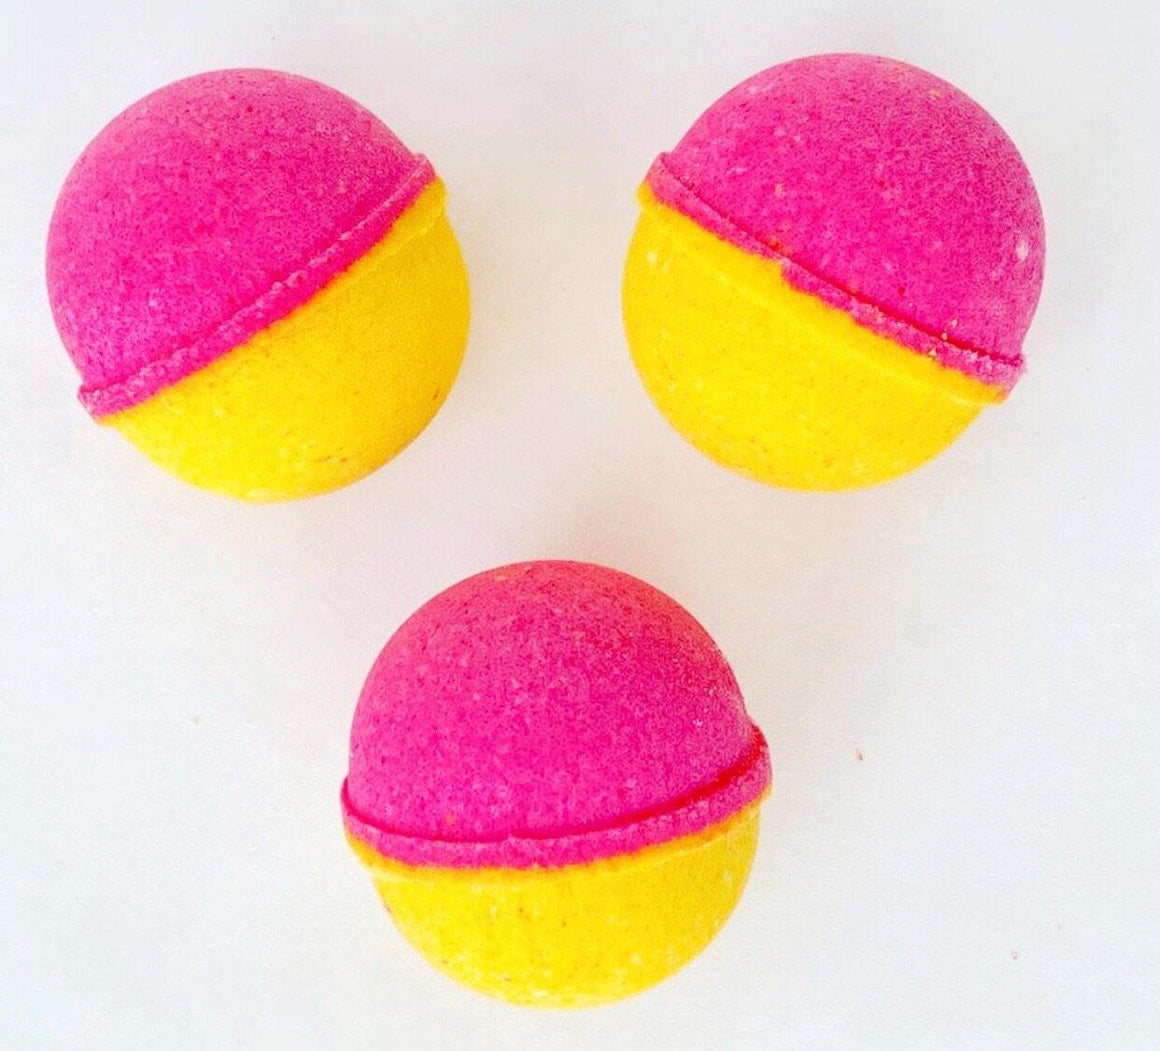 BATH FIZZY - COLOURBLAST SMALL TUTTI FRUTTI PINK LEMONADE, BATH, Crafted Bath - Bon + Co. Party Studio